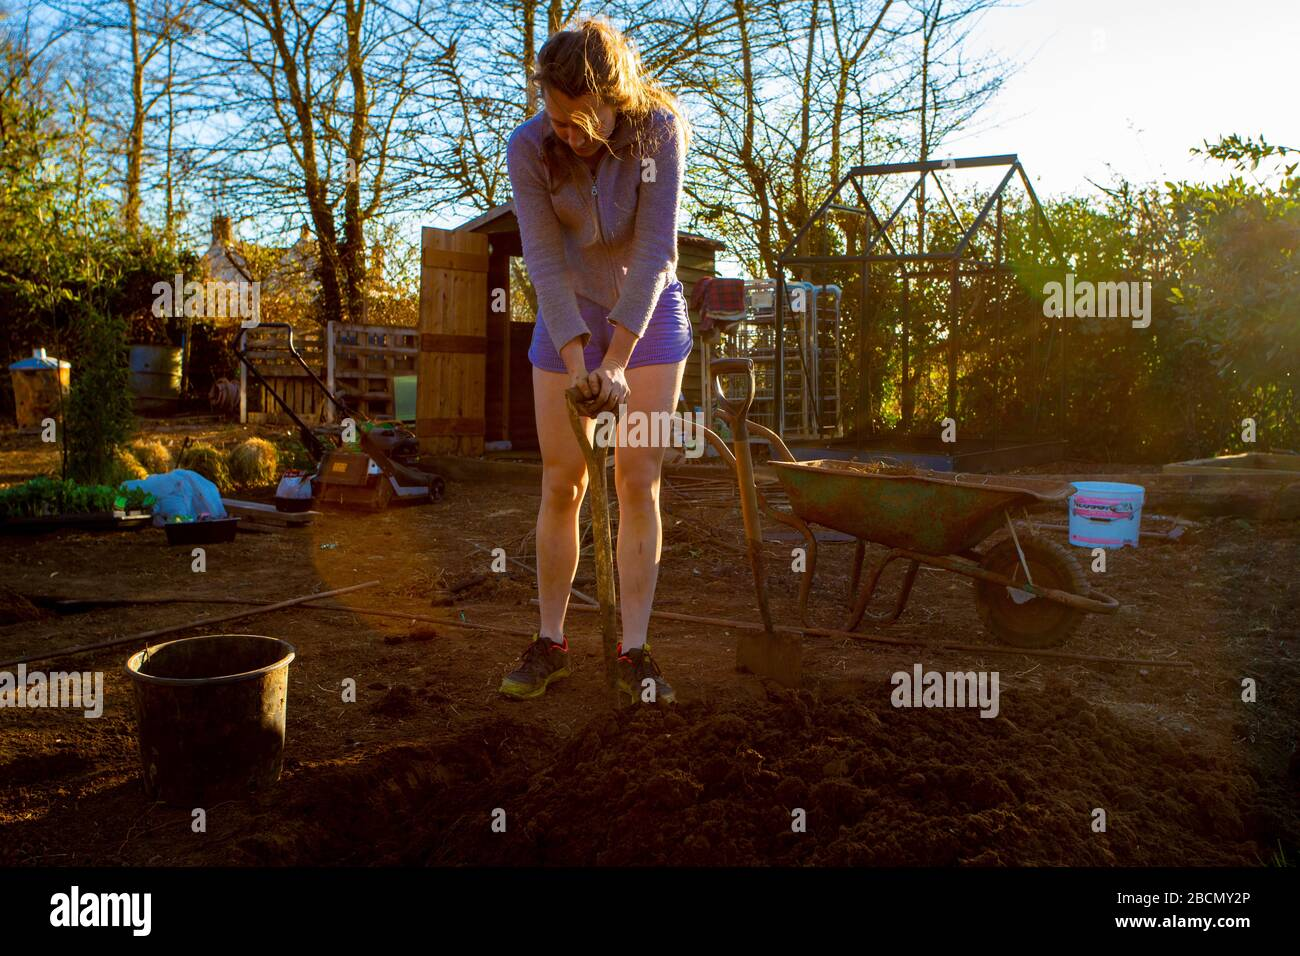 Preparing the new allotment early in the season - getting it ready for food production, keeping active during lockdown - life in the time of covid-19 Stock Photo